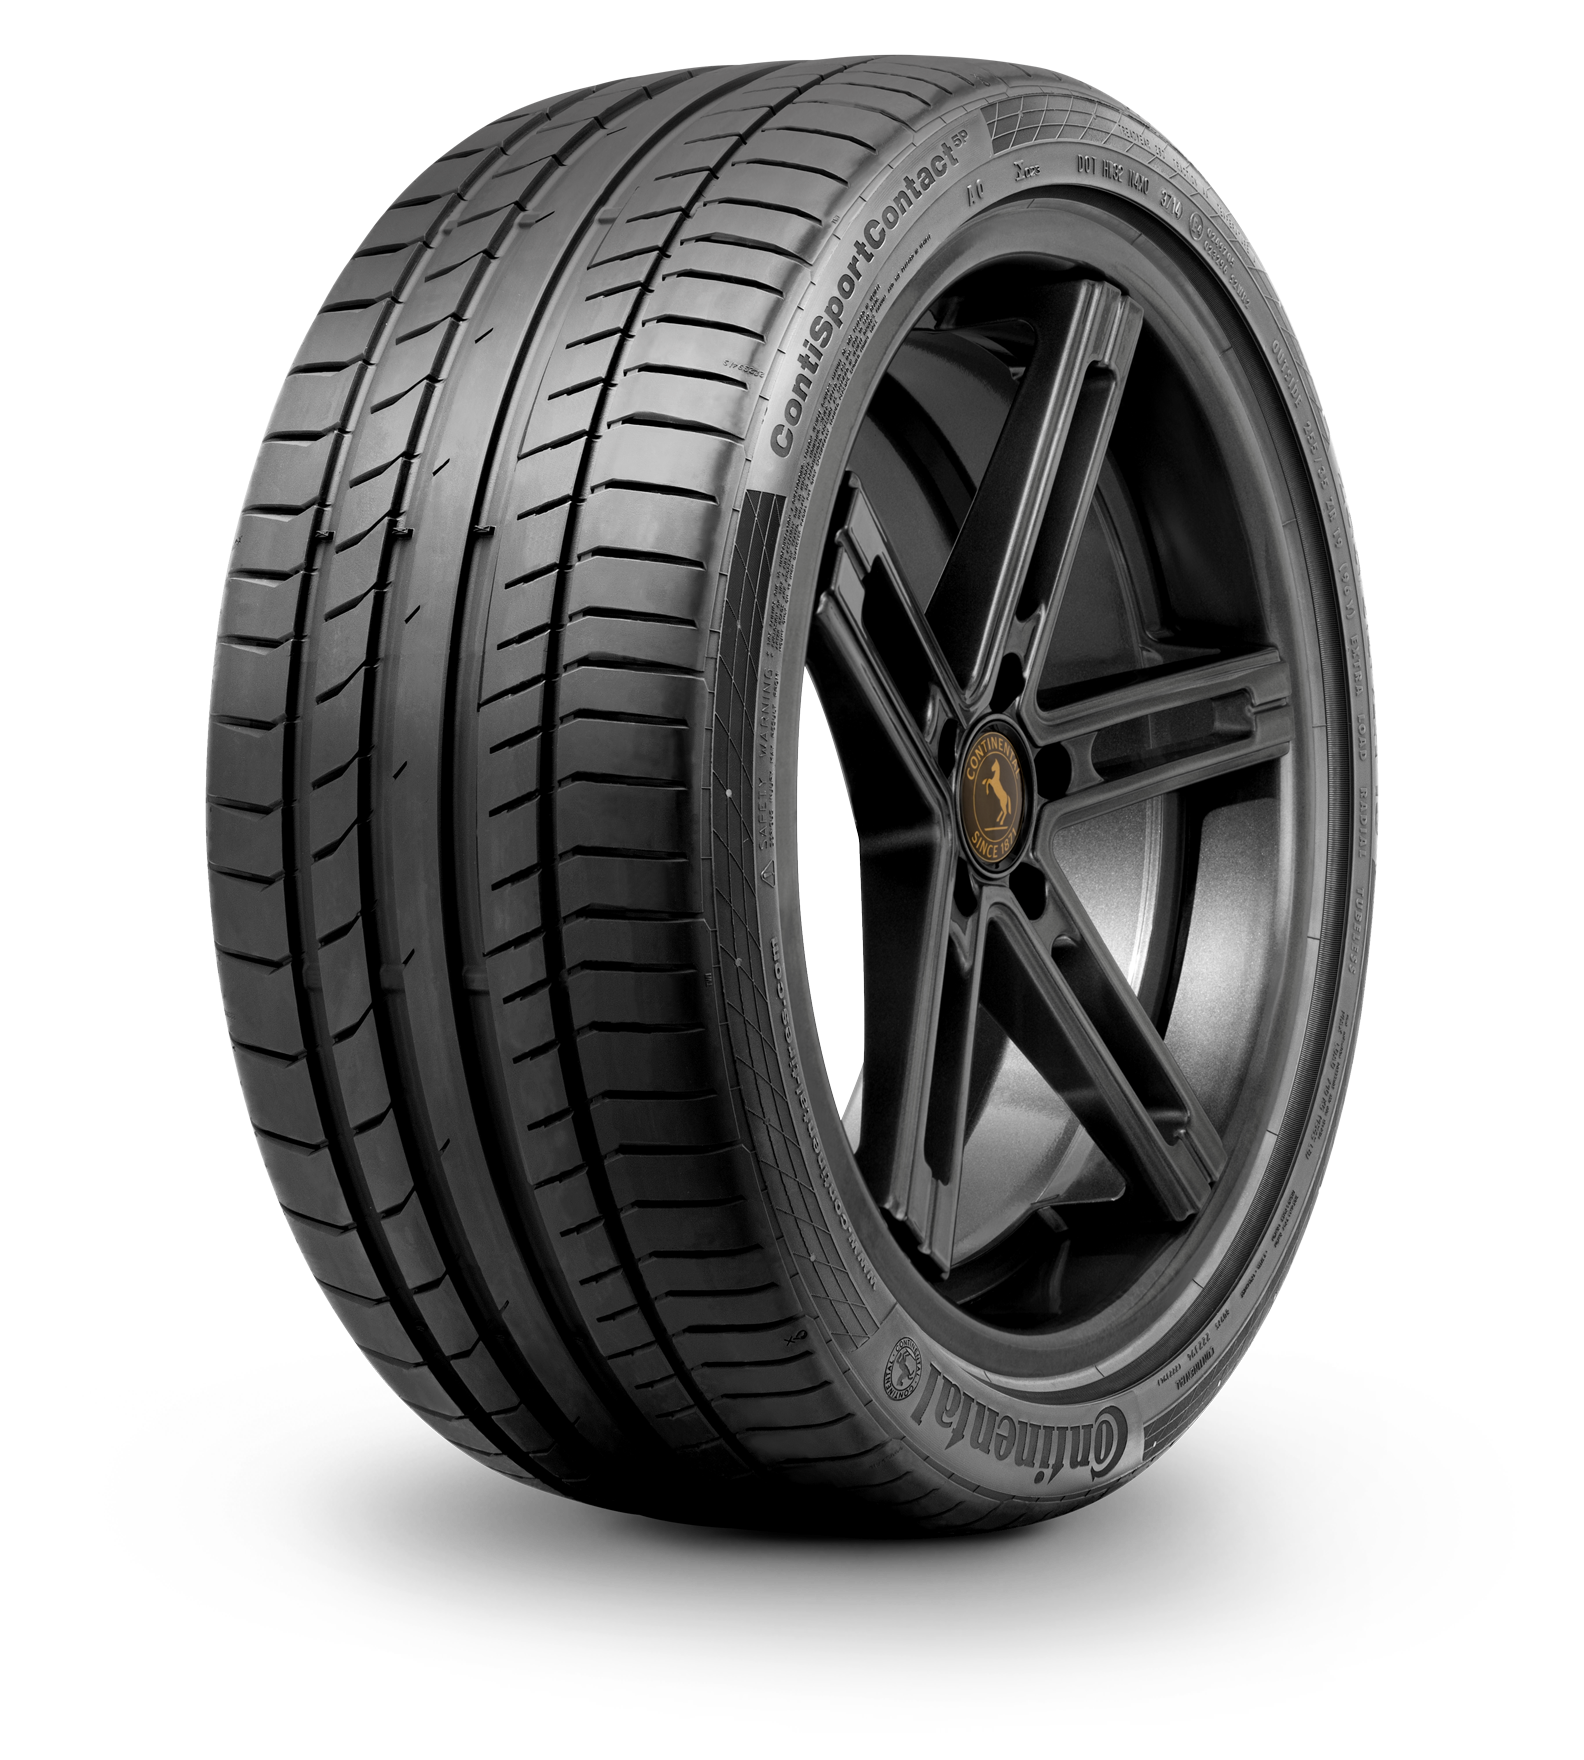 CONTINENTAL SPORT CONTACT 5P MO 325/40R21 113Y